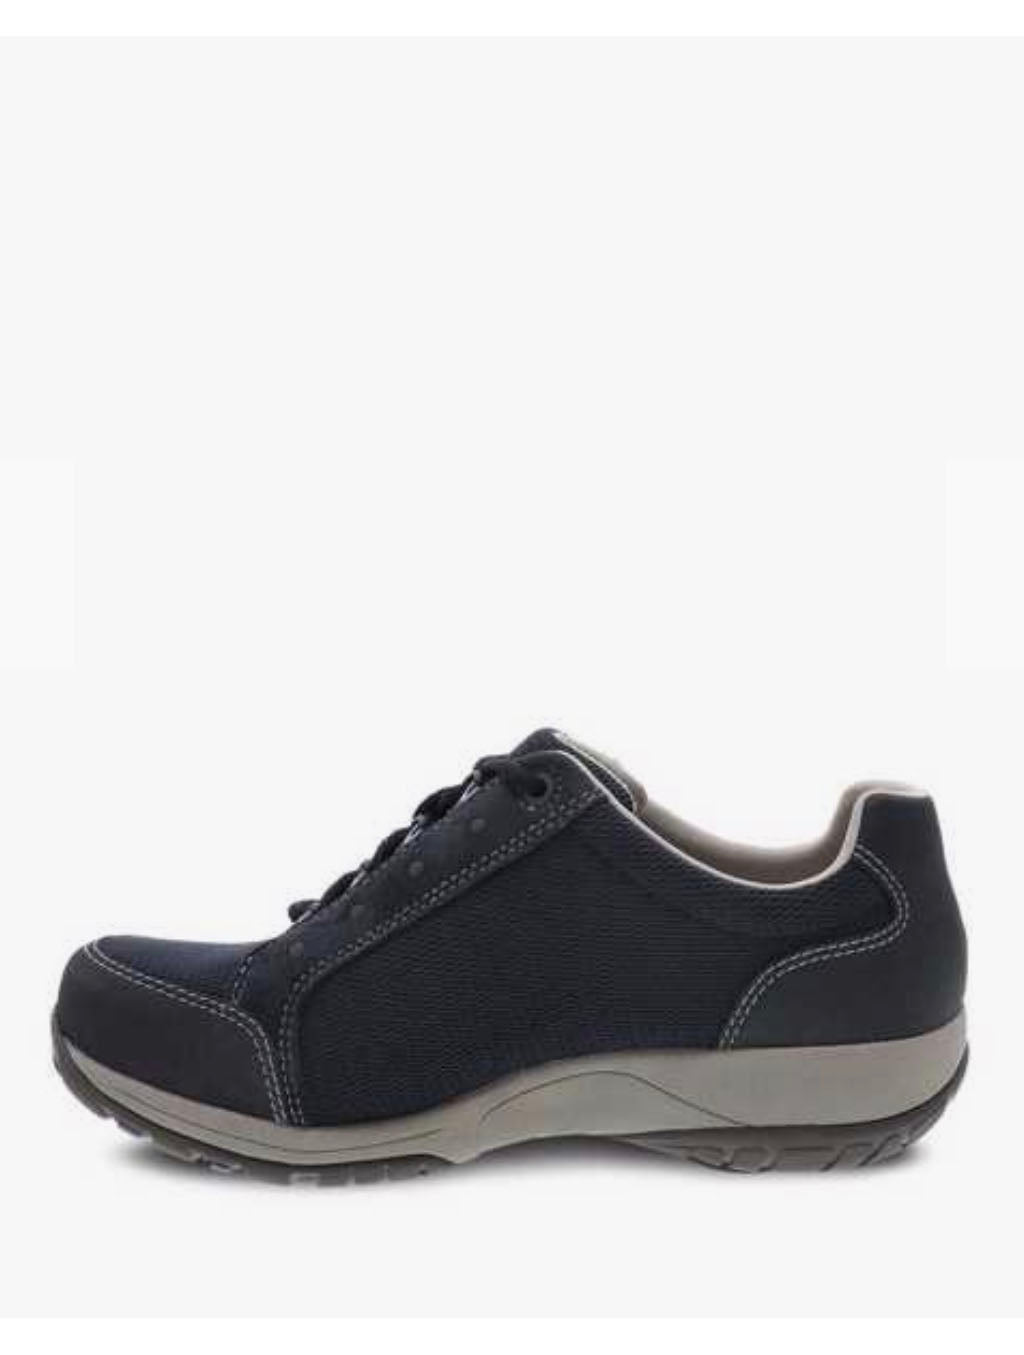 Dansko Peggy Sneaker in Navy